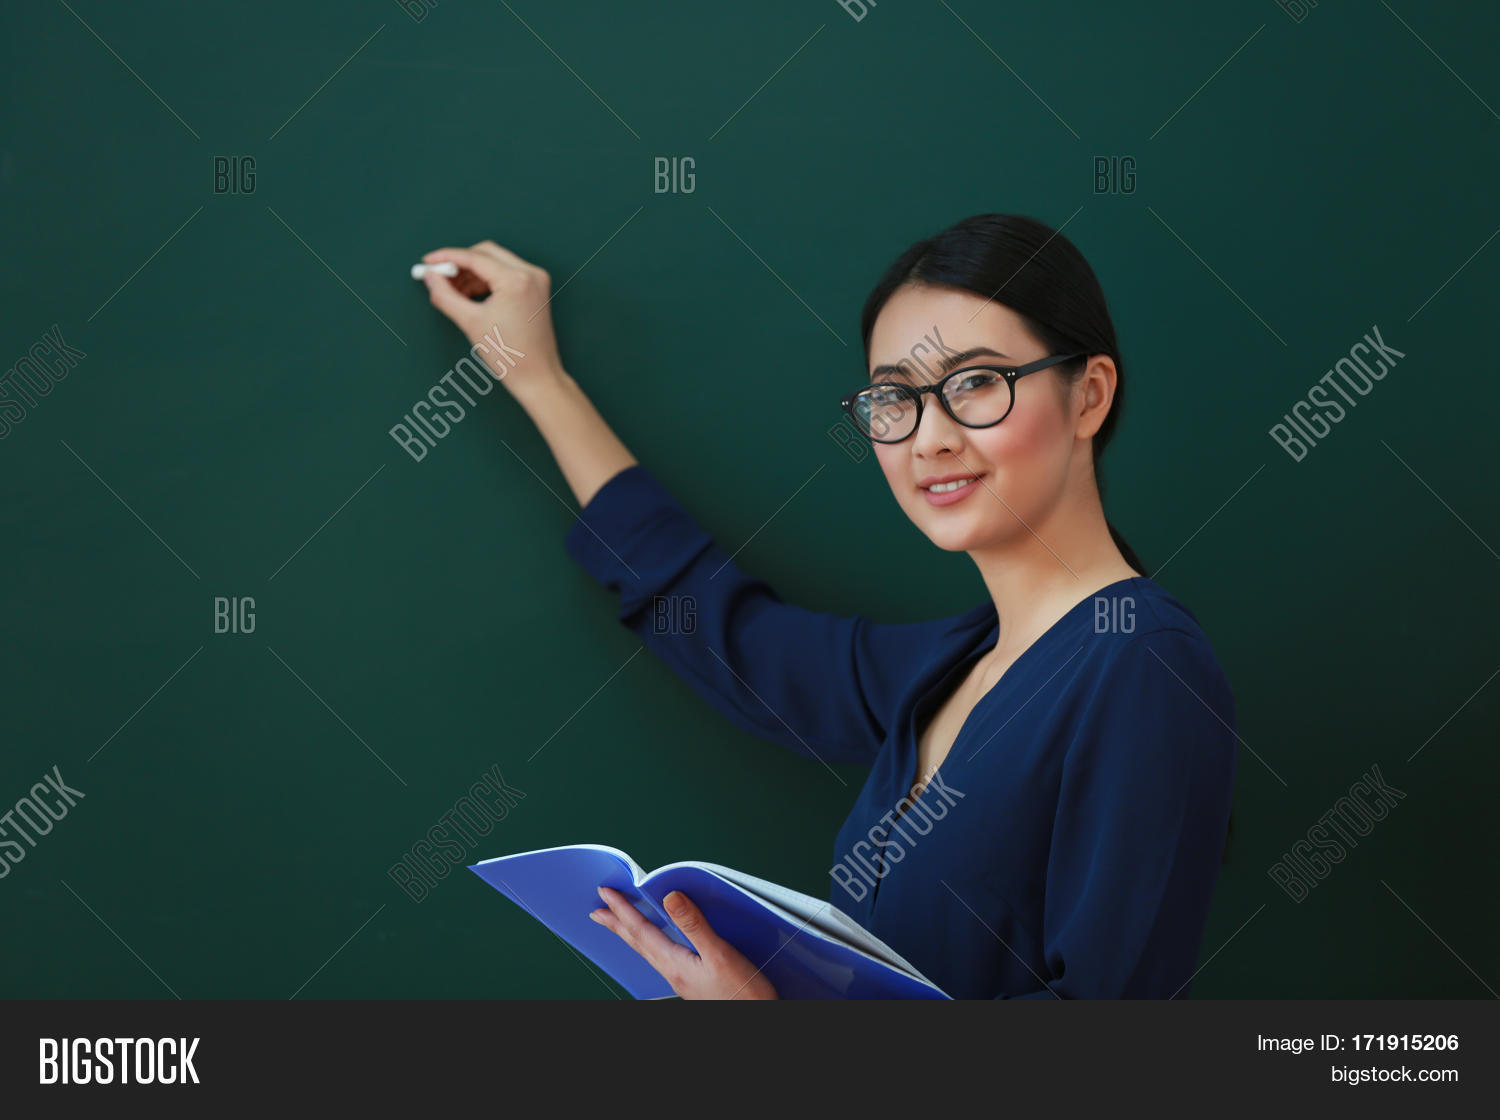 teaching career Teaching definition is - the act, practice, or profession of a teacher how to use teaching in a sentence  a chemist who has devoted his career to teaching, even though he could have made a lot more money in an industrial job  recent examples on the web: noun.